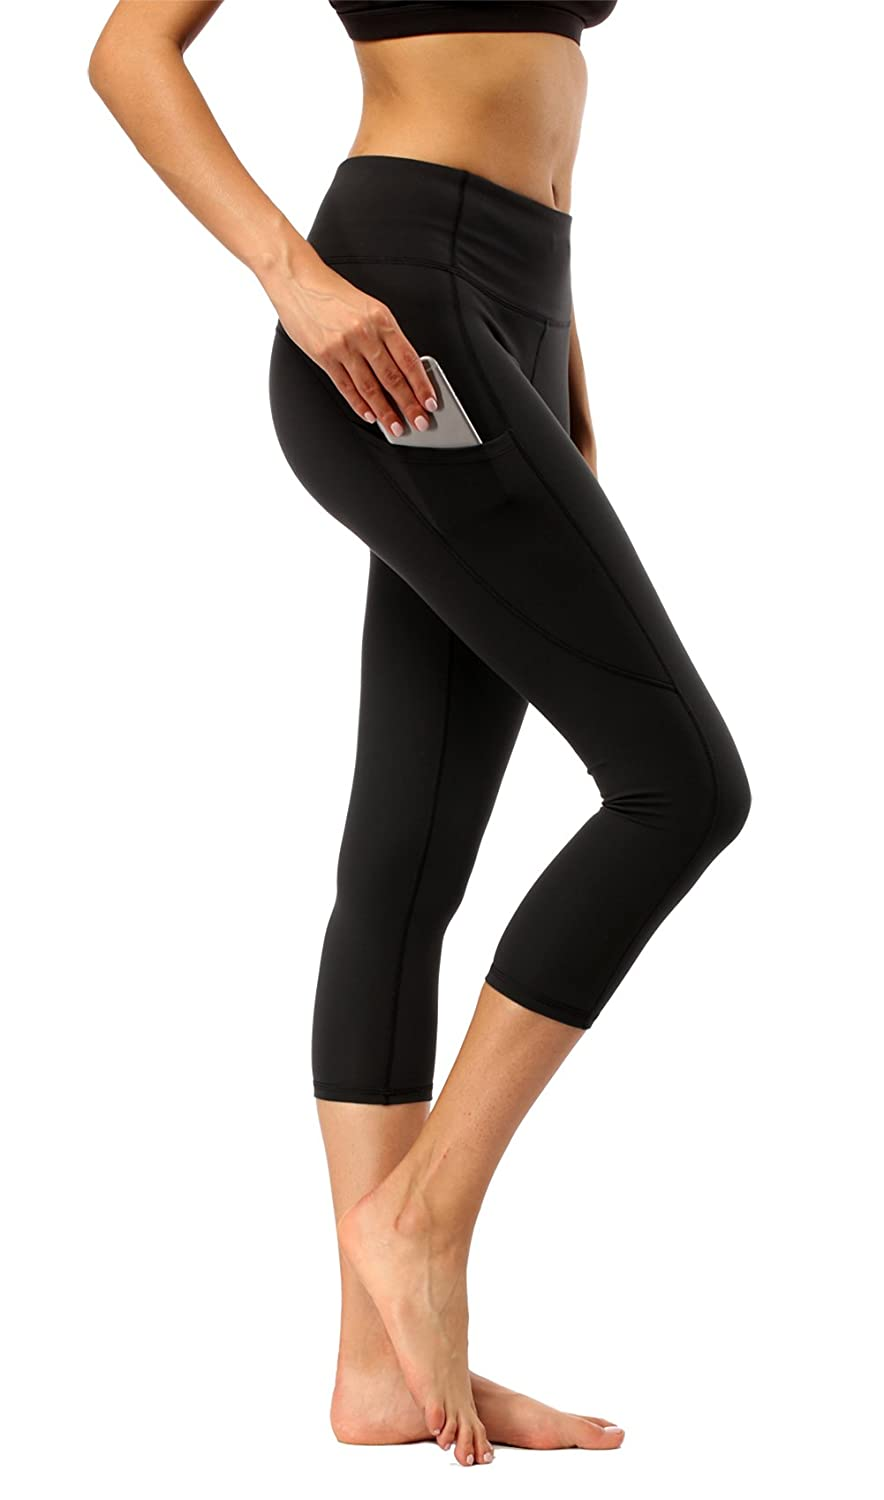 0c5a6176b1 ✅HIGH-QUALITY MATERIAL: These high waisted yoga capri leggings with pockets  are made out of 88% polyester and 12% spandex. The high-quality material,  ...